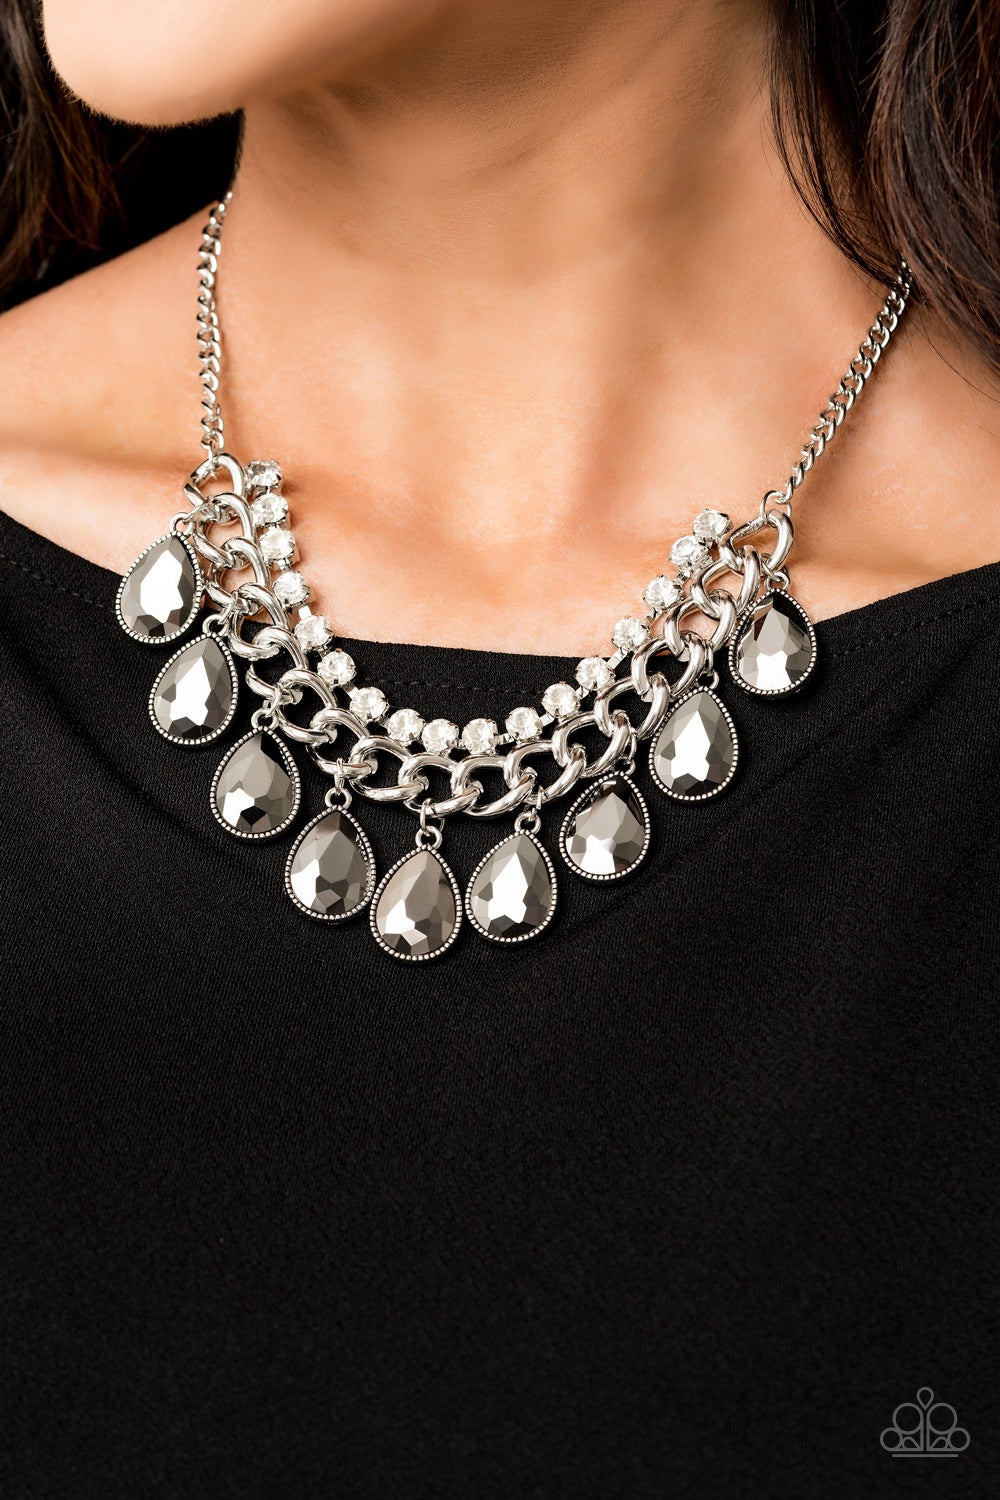 All Toget-HEIR Now Silver Paparazzi Necklace - JewelTonez Jewelry